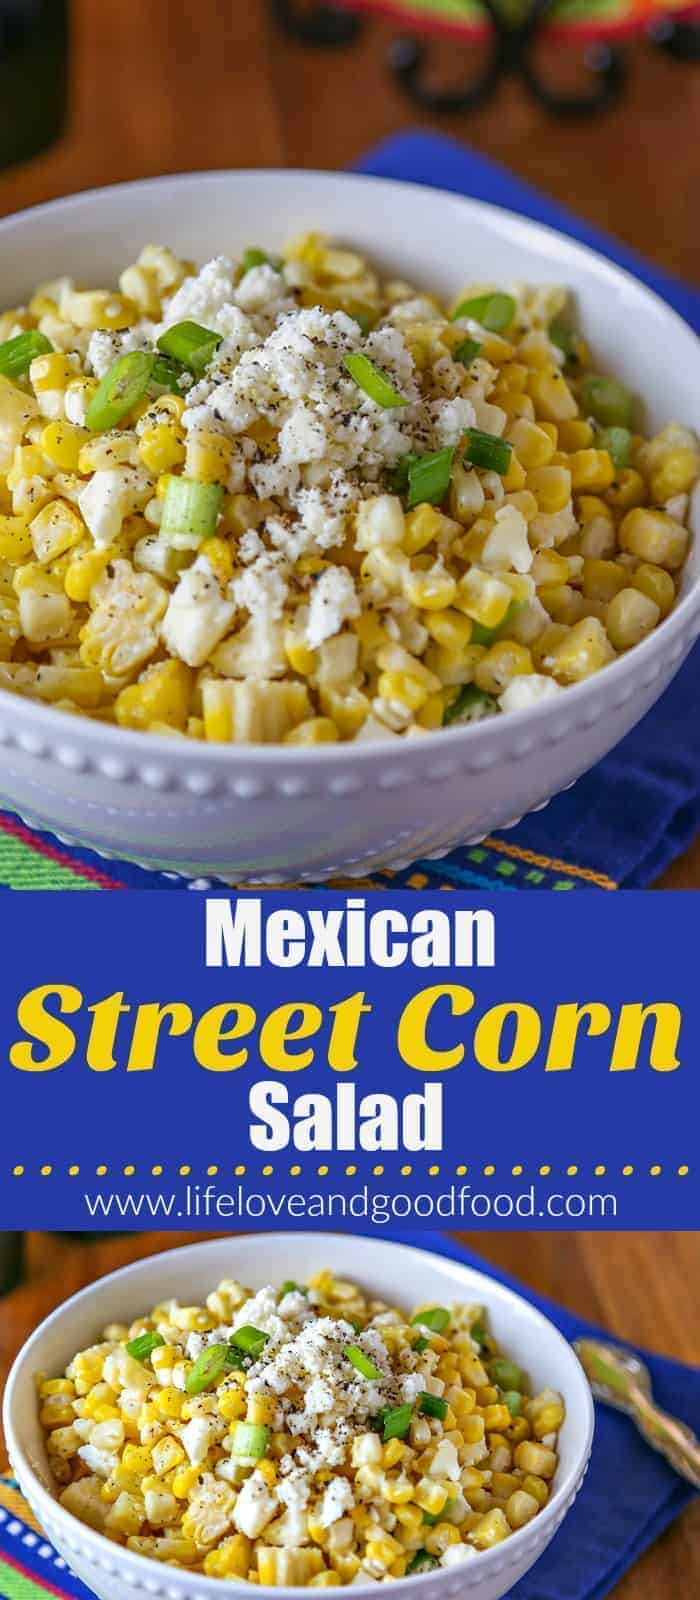 Serve this easy Mexican Street Corn Salad just once and it will quickly become one of your favorite go-to sides for taco nights at home!